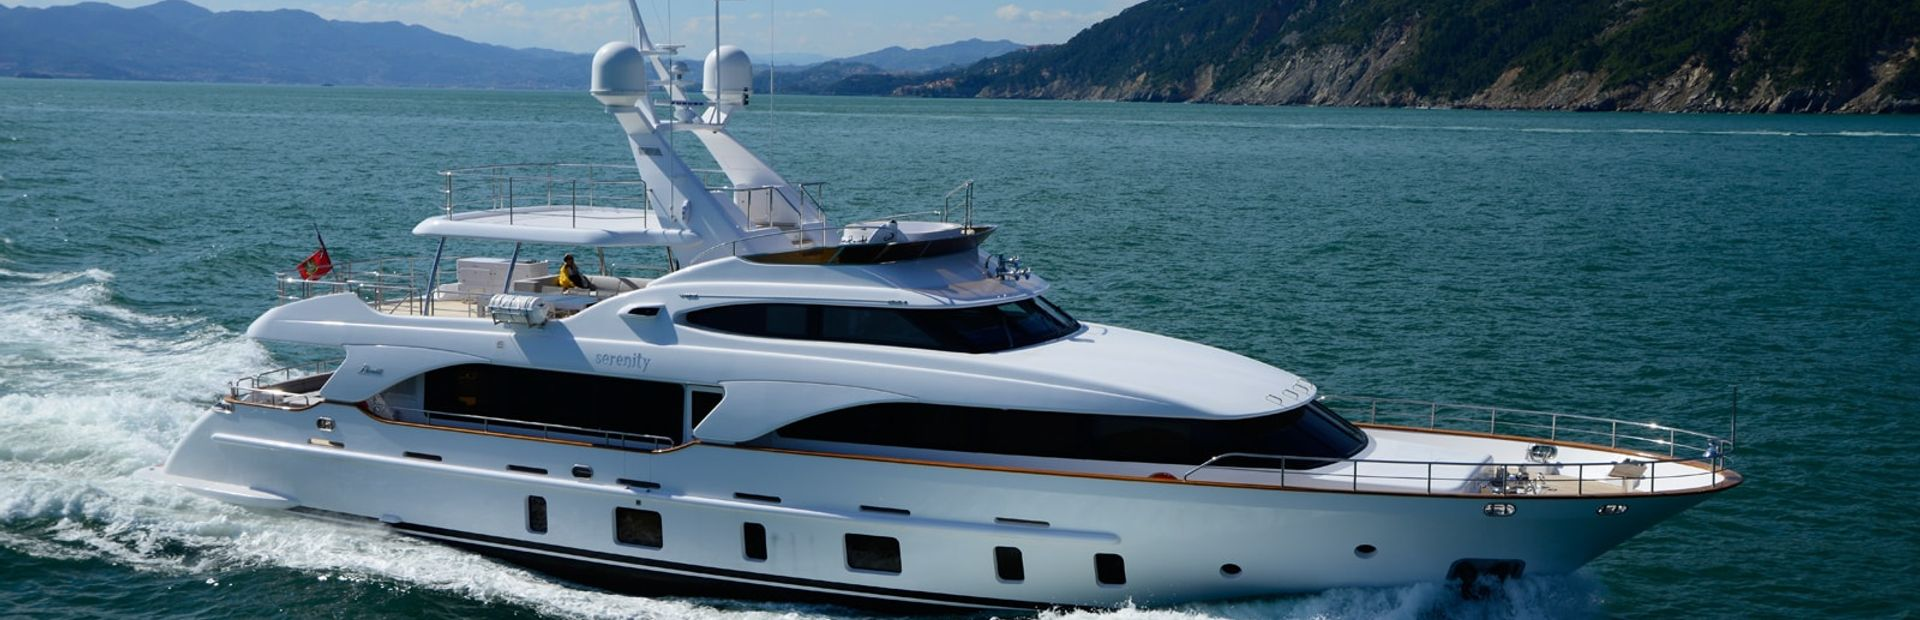 Tradition 105' Yacht Charter